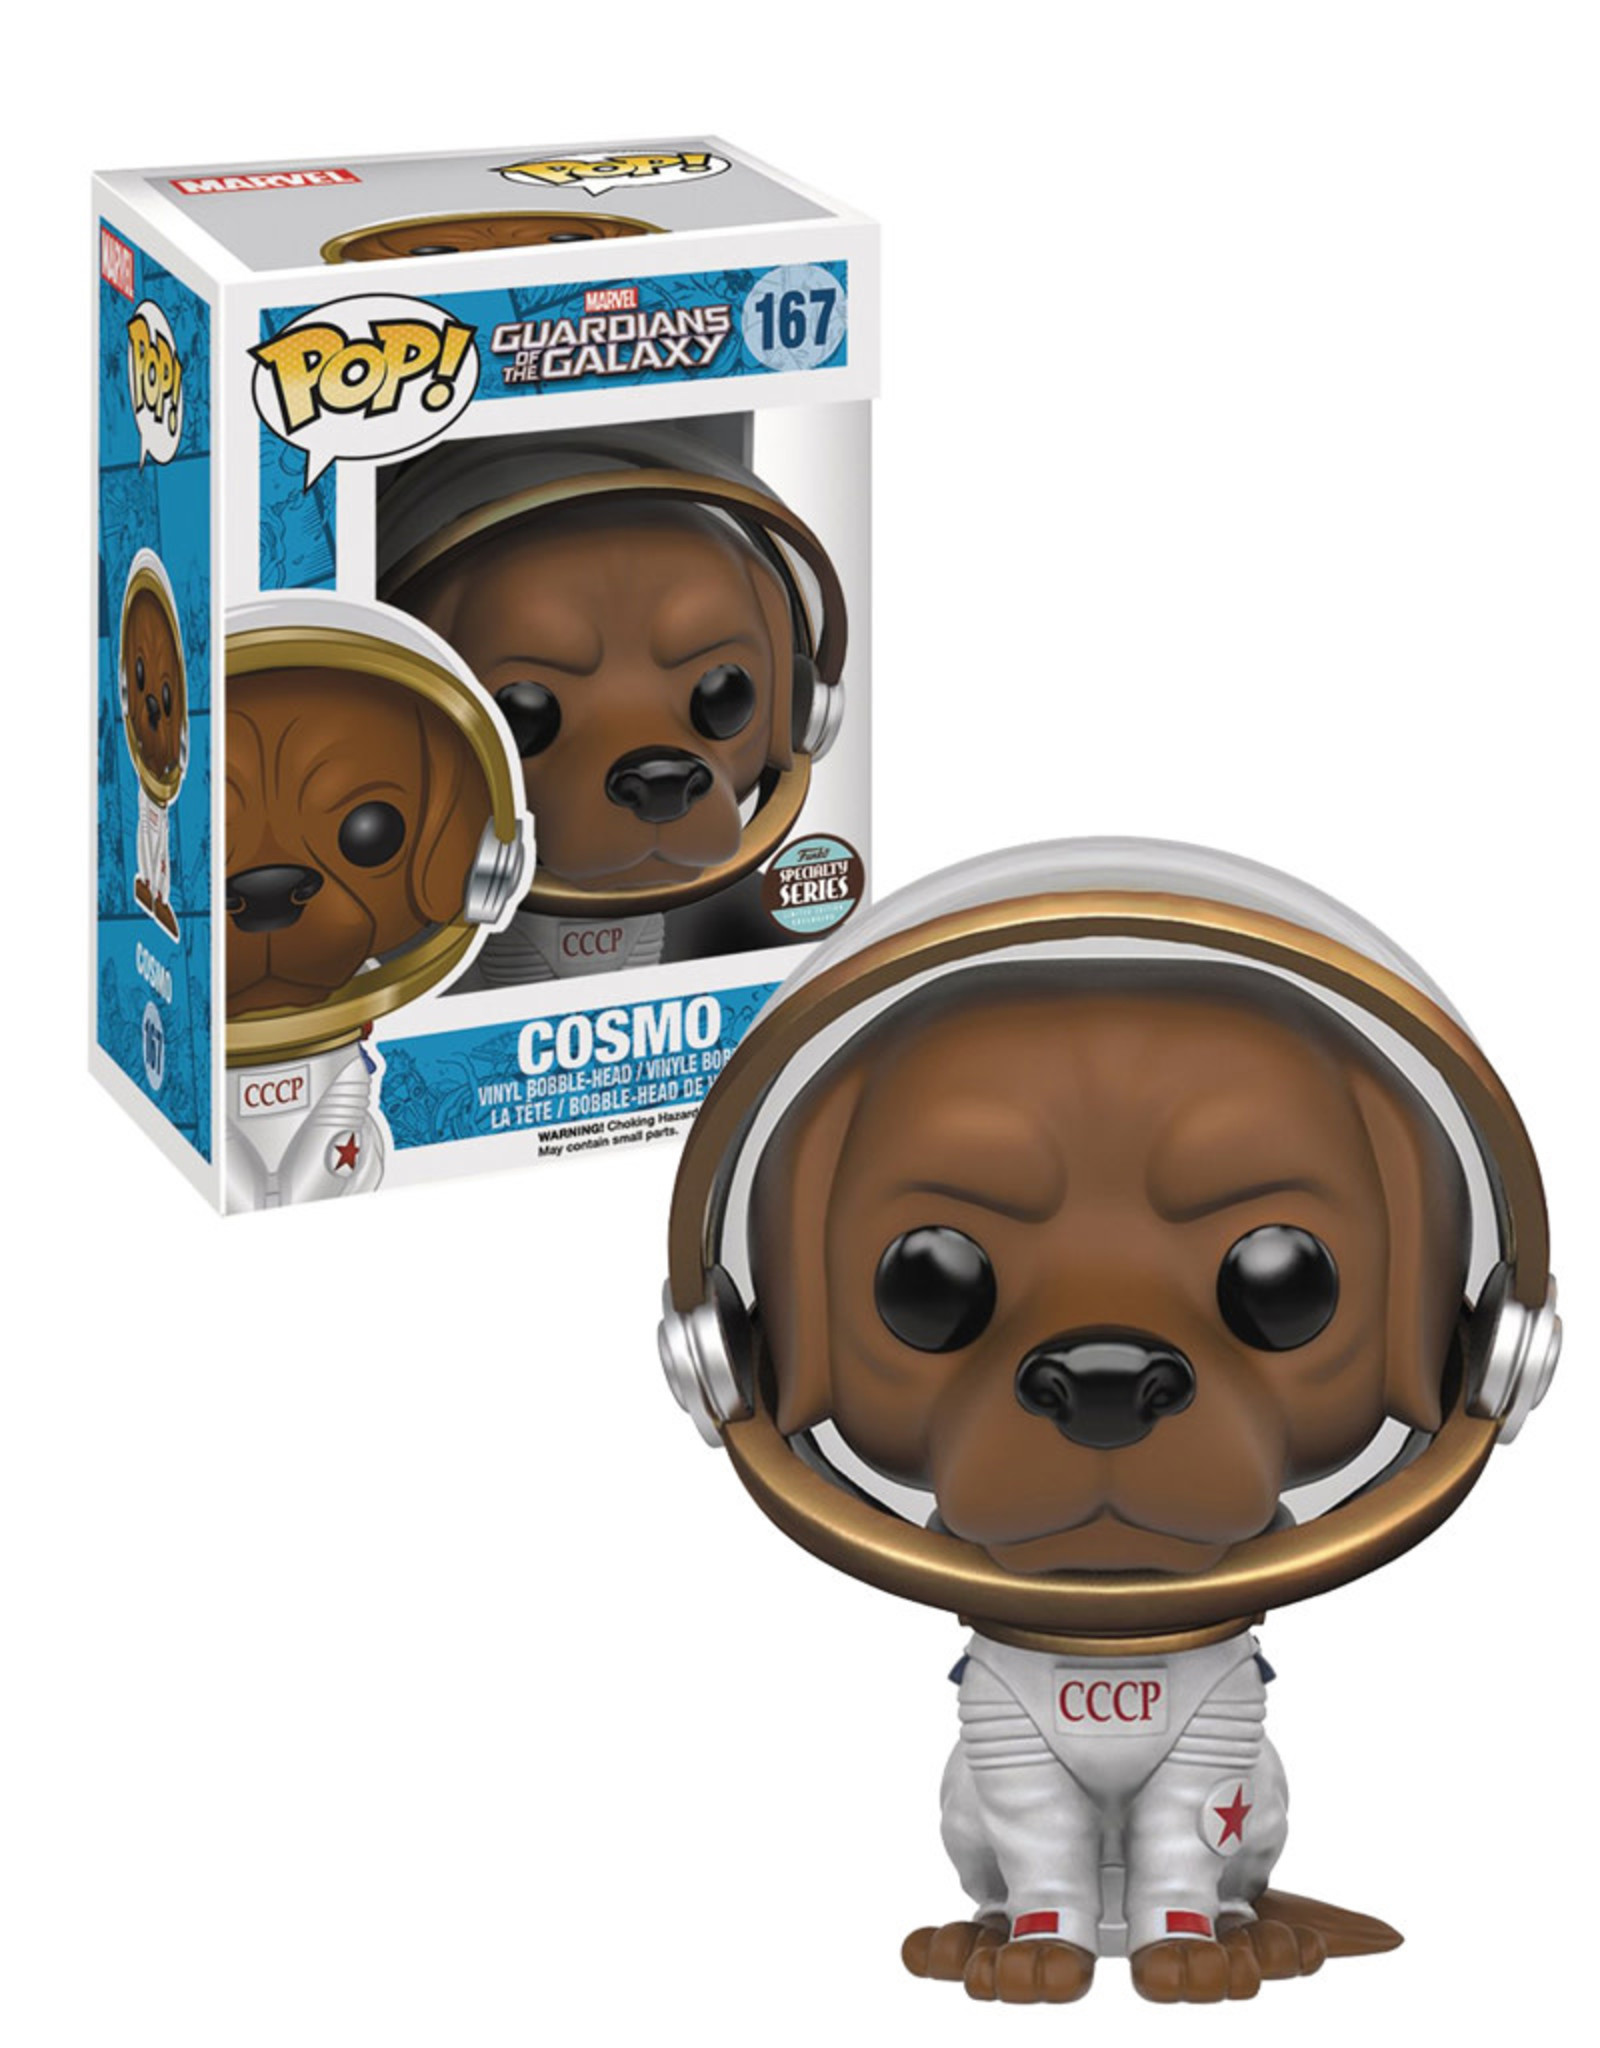 Guardians of the Galaxy 167 ( Funko Pop ) Cosmo